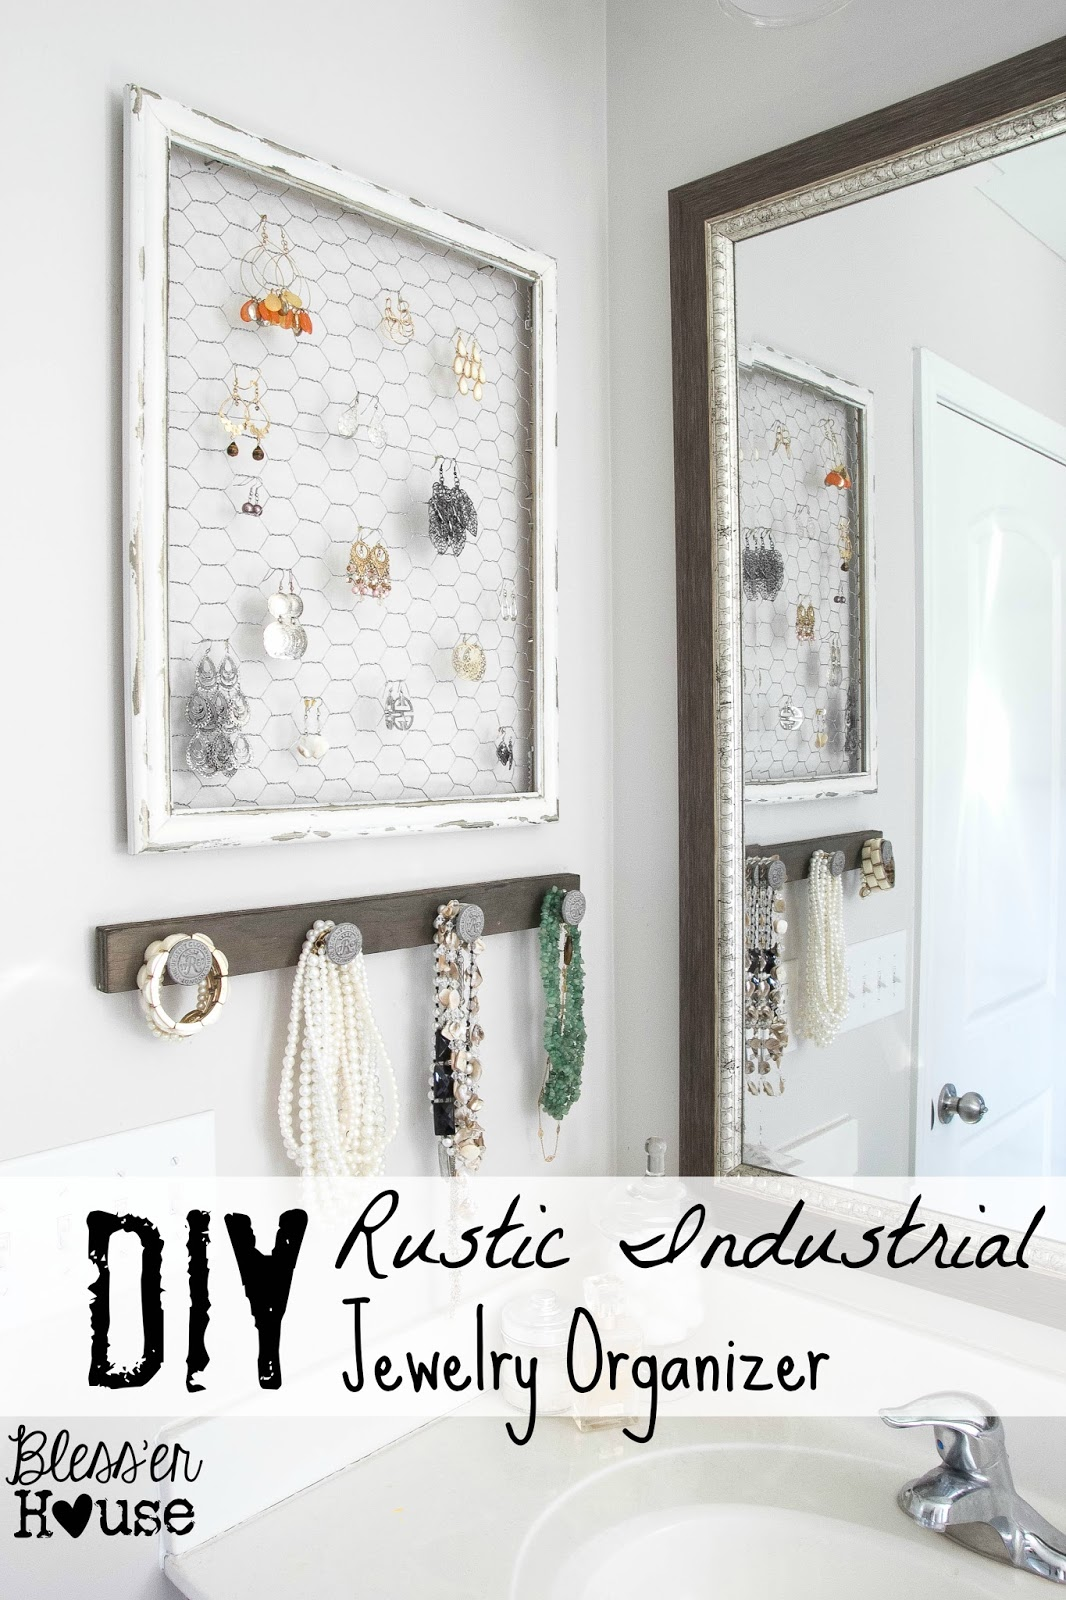 DIY Rustic Industrial Jewelry Organizer {via Bless'er House}